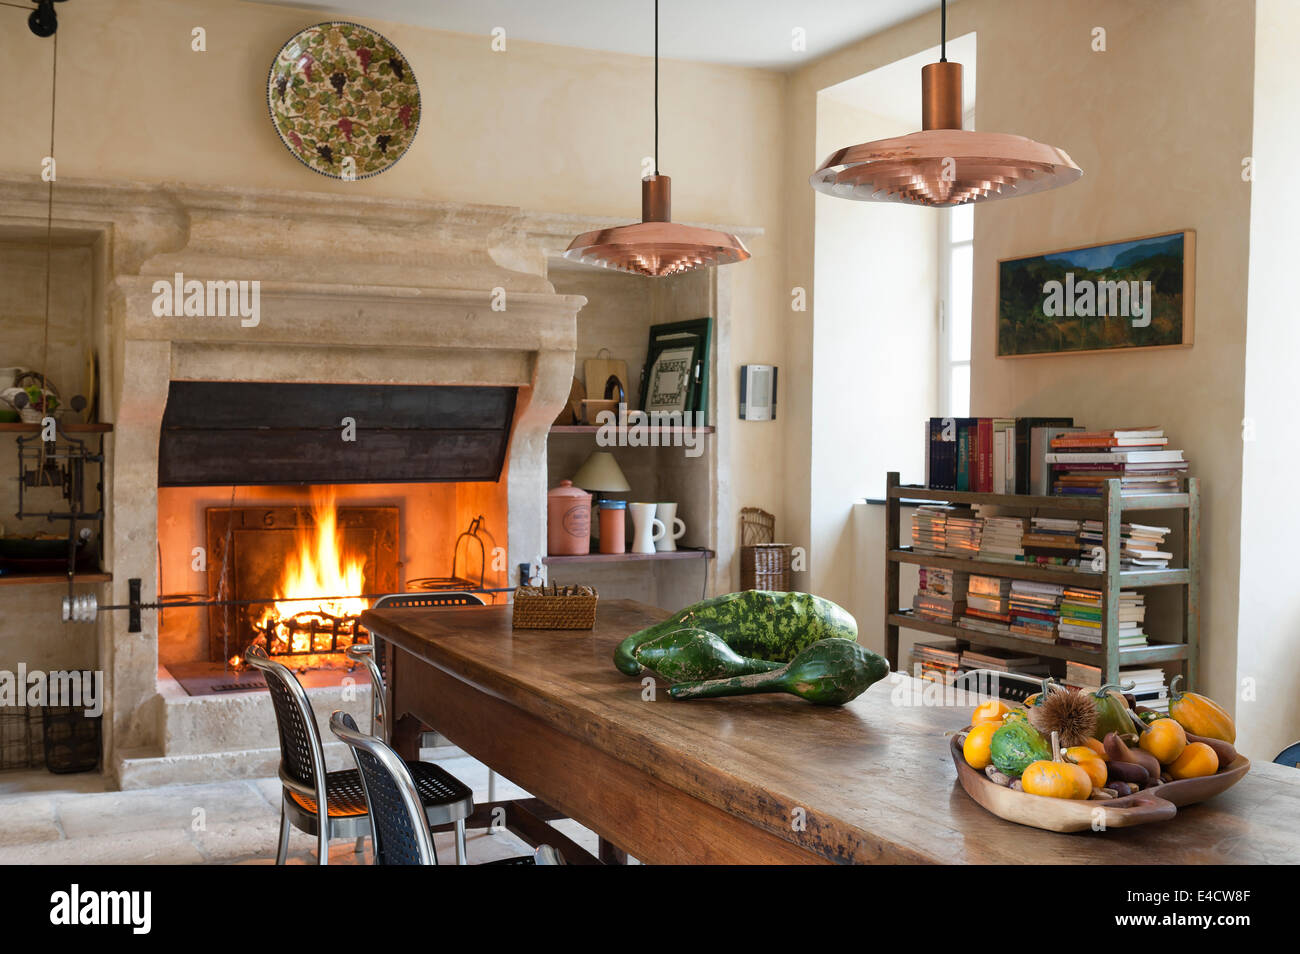 provencal kitchen with large stone fireplace and wooden dining table E4CW8F